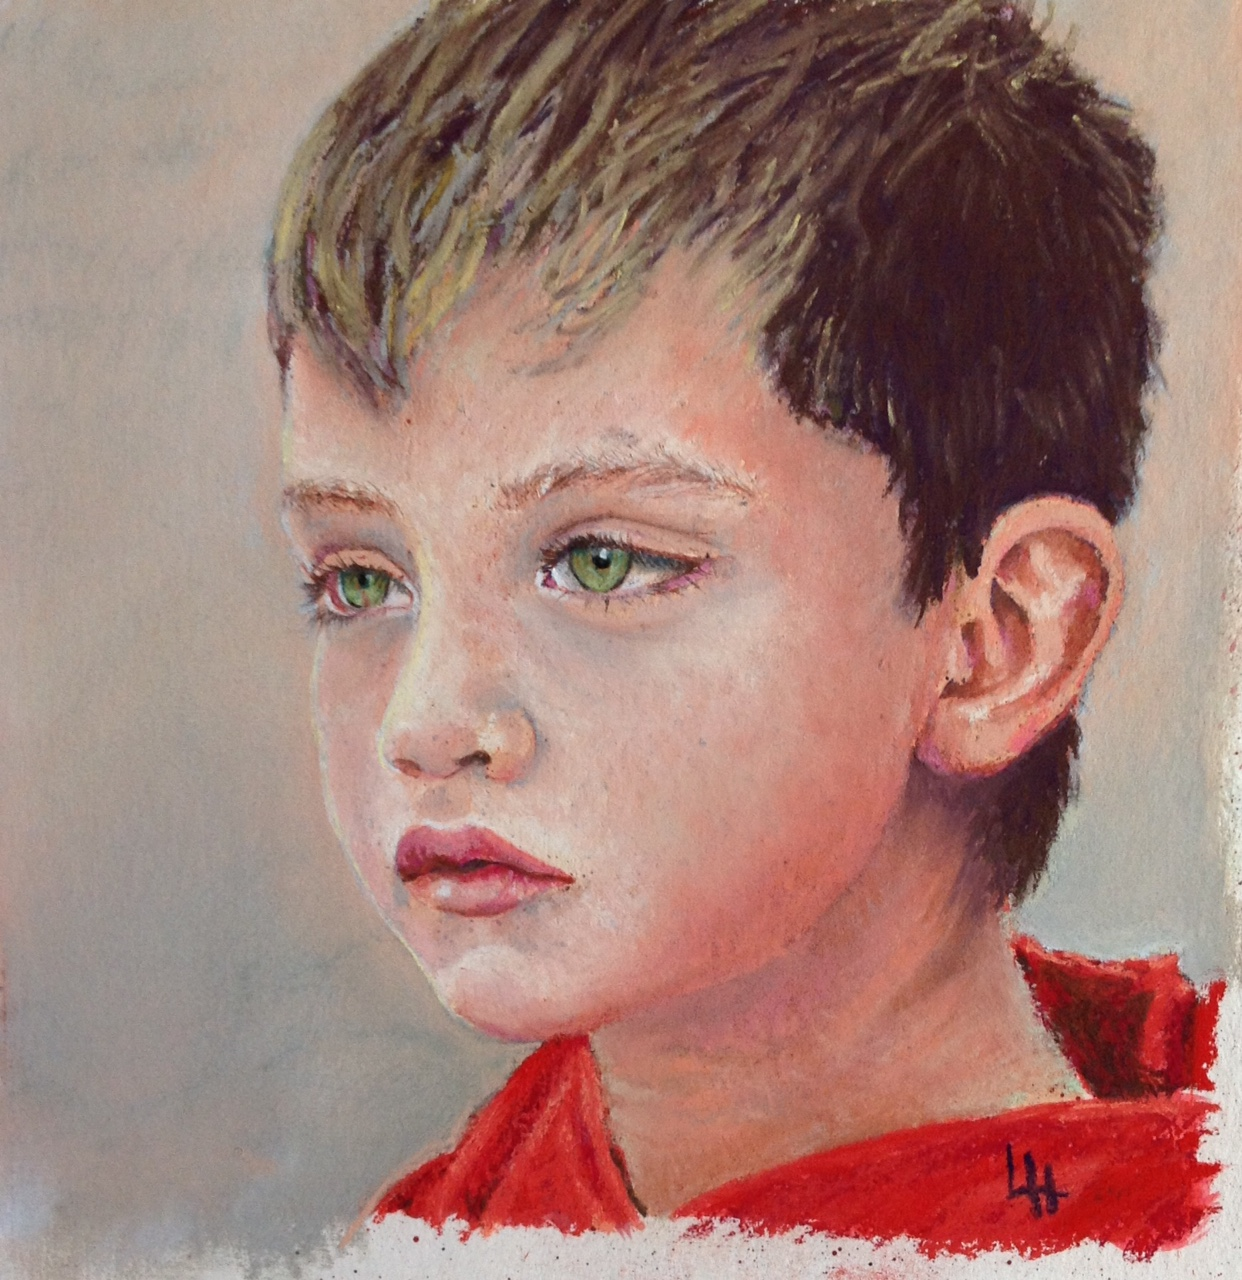 Pastel Portrait-'Fragility' pastel on paper 20x20cm by Louise Hennigs